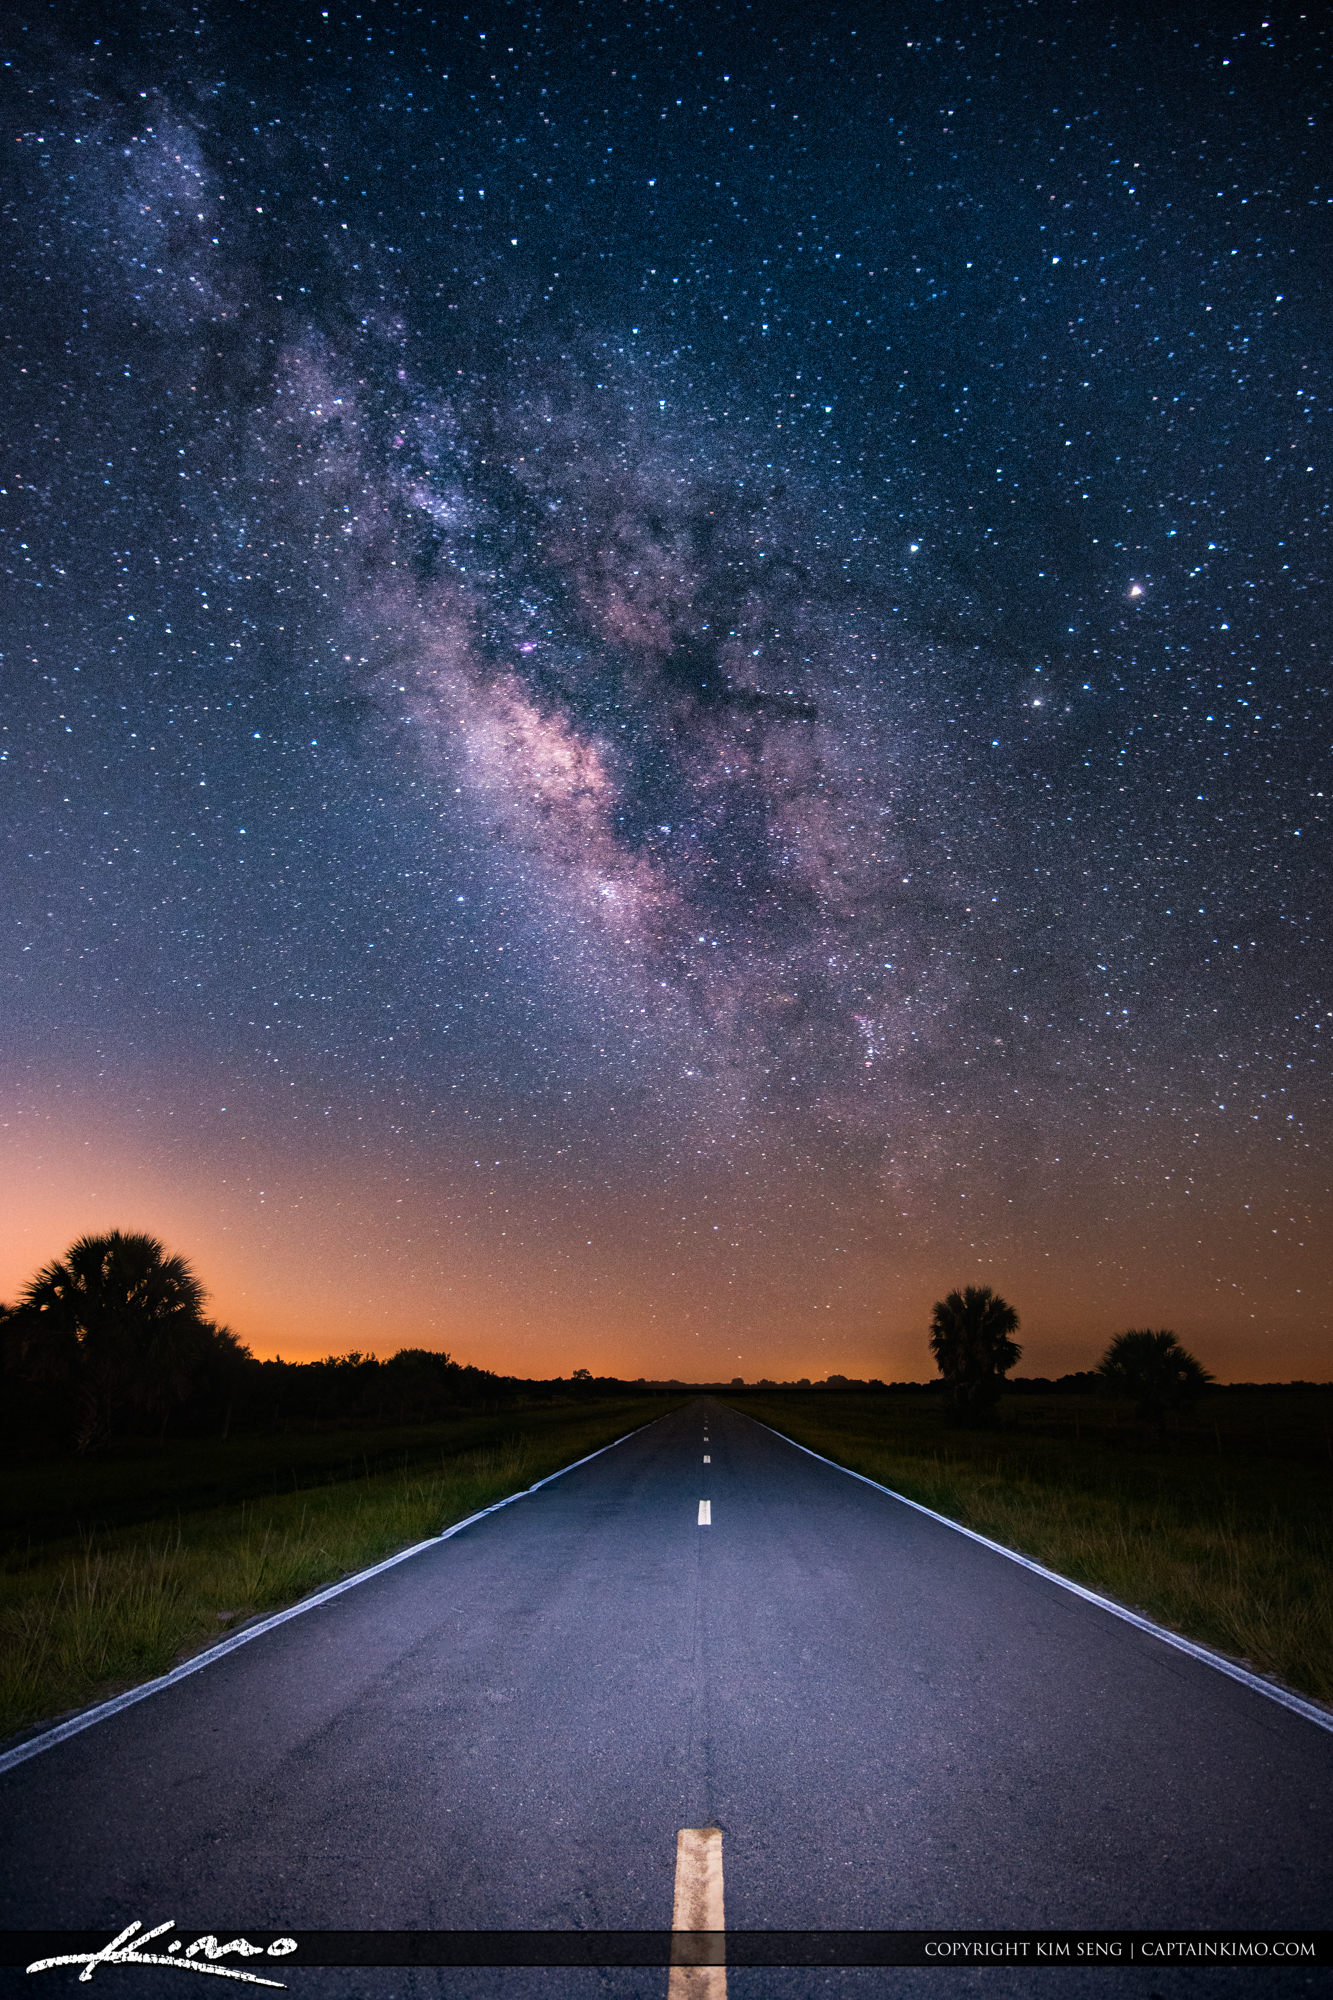 Eye of the Abyss The Road Towards the Milkyway